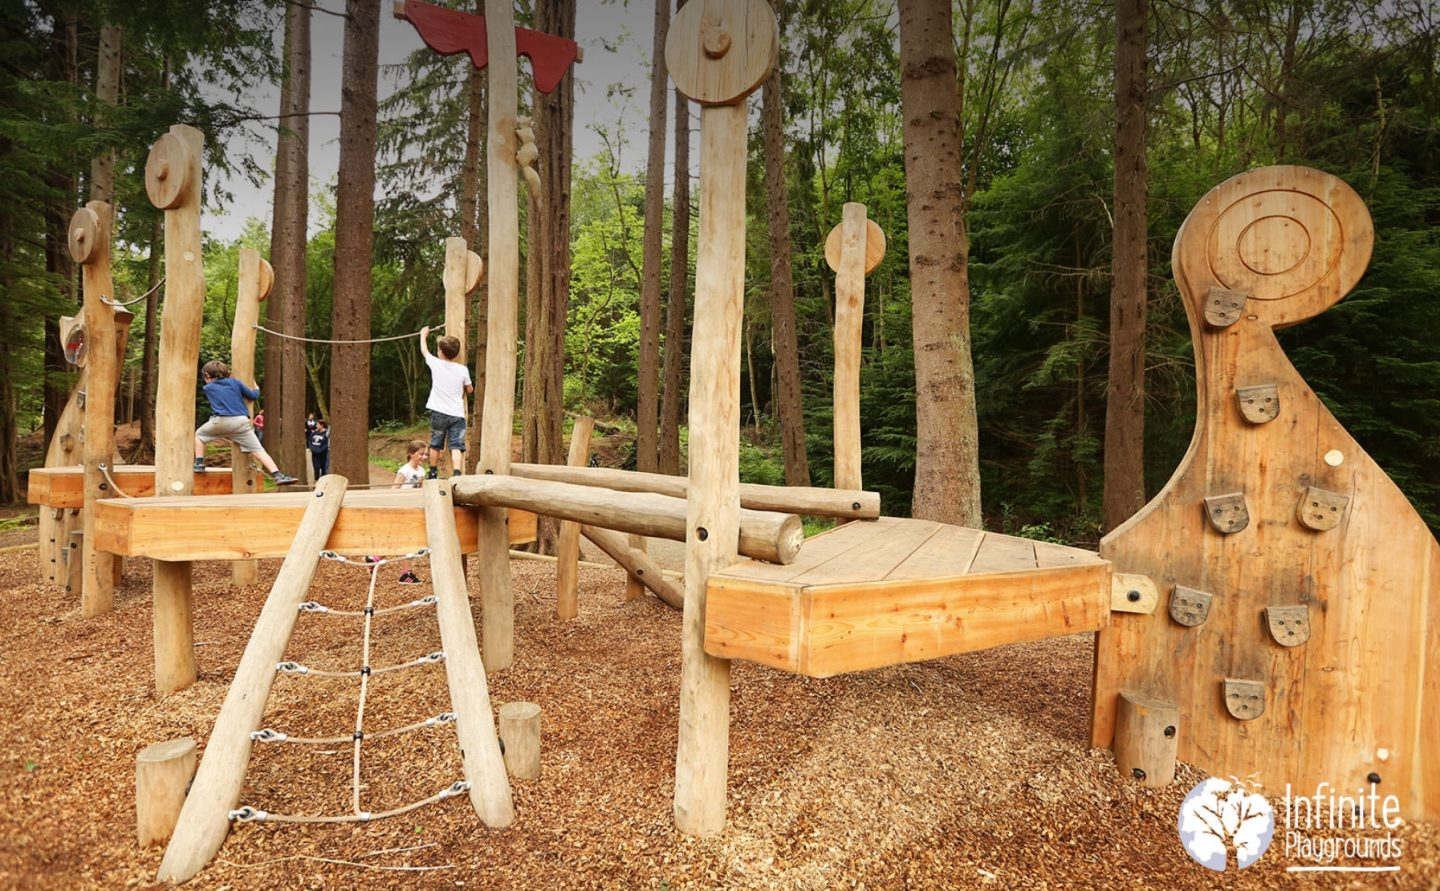 10 ways natural playgrounds help benefit children's development